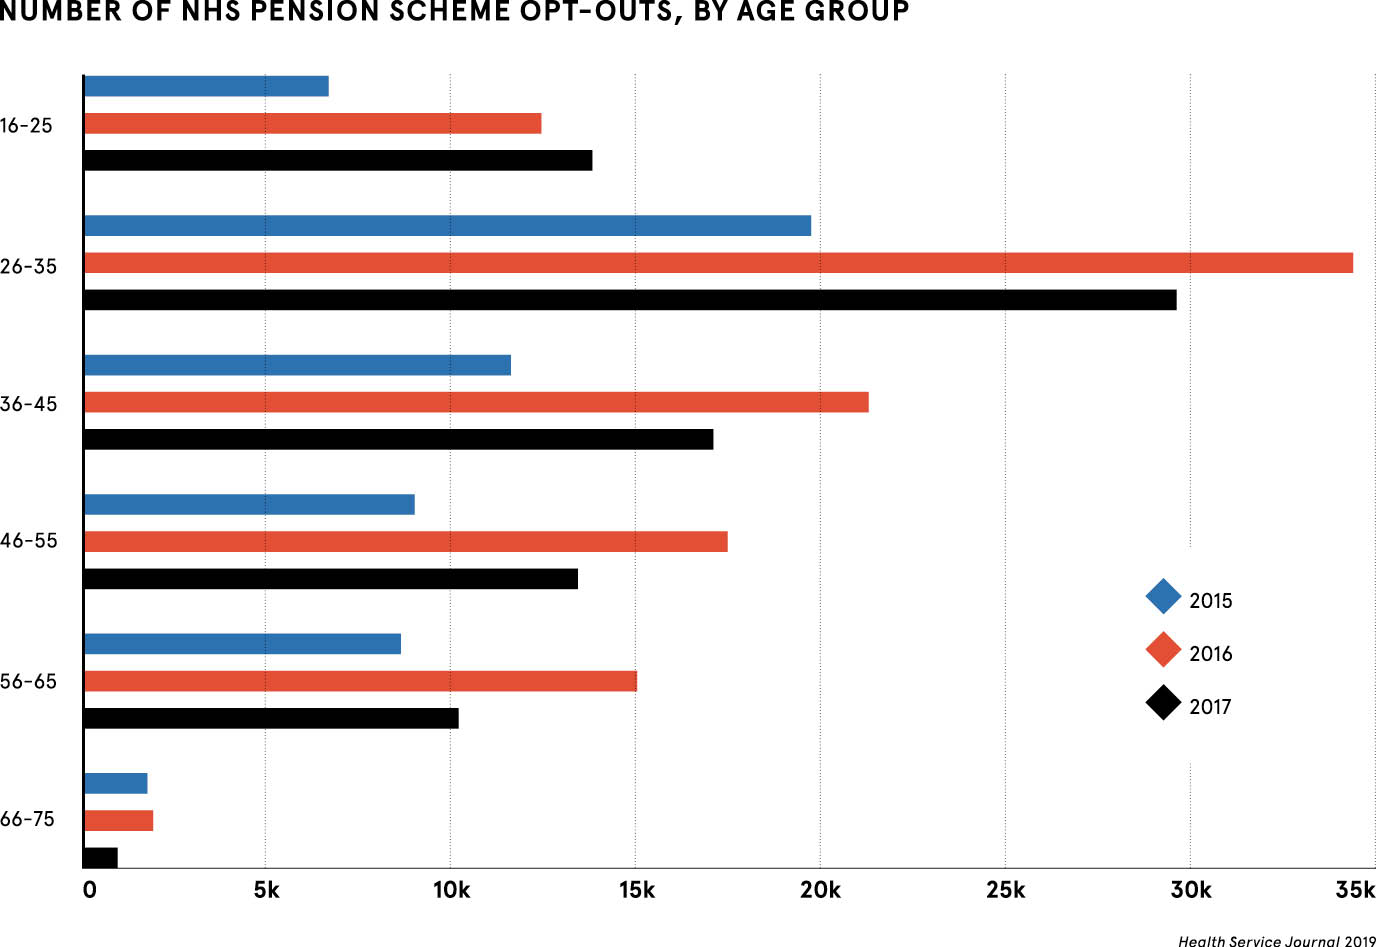 Nhs Pension Opt Out >> Nhs Pension Scheme Why Are So Many Workers Opting Out